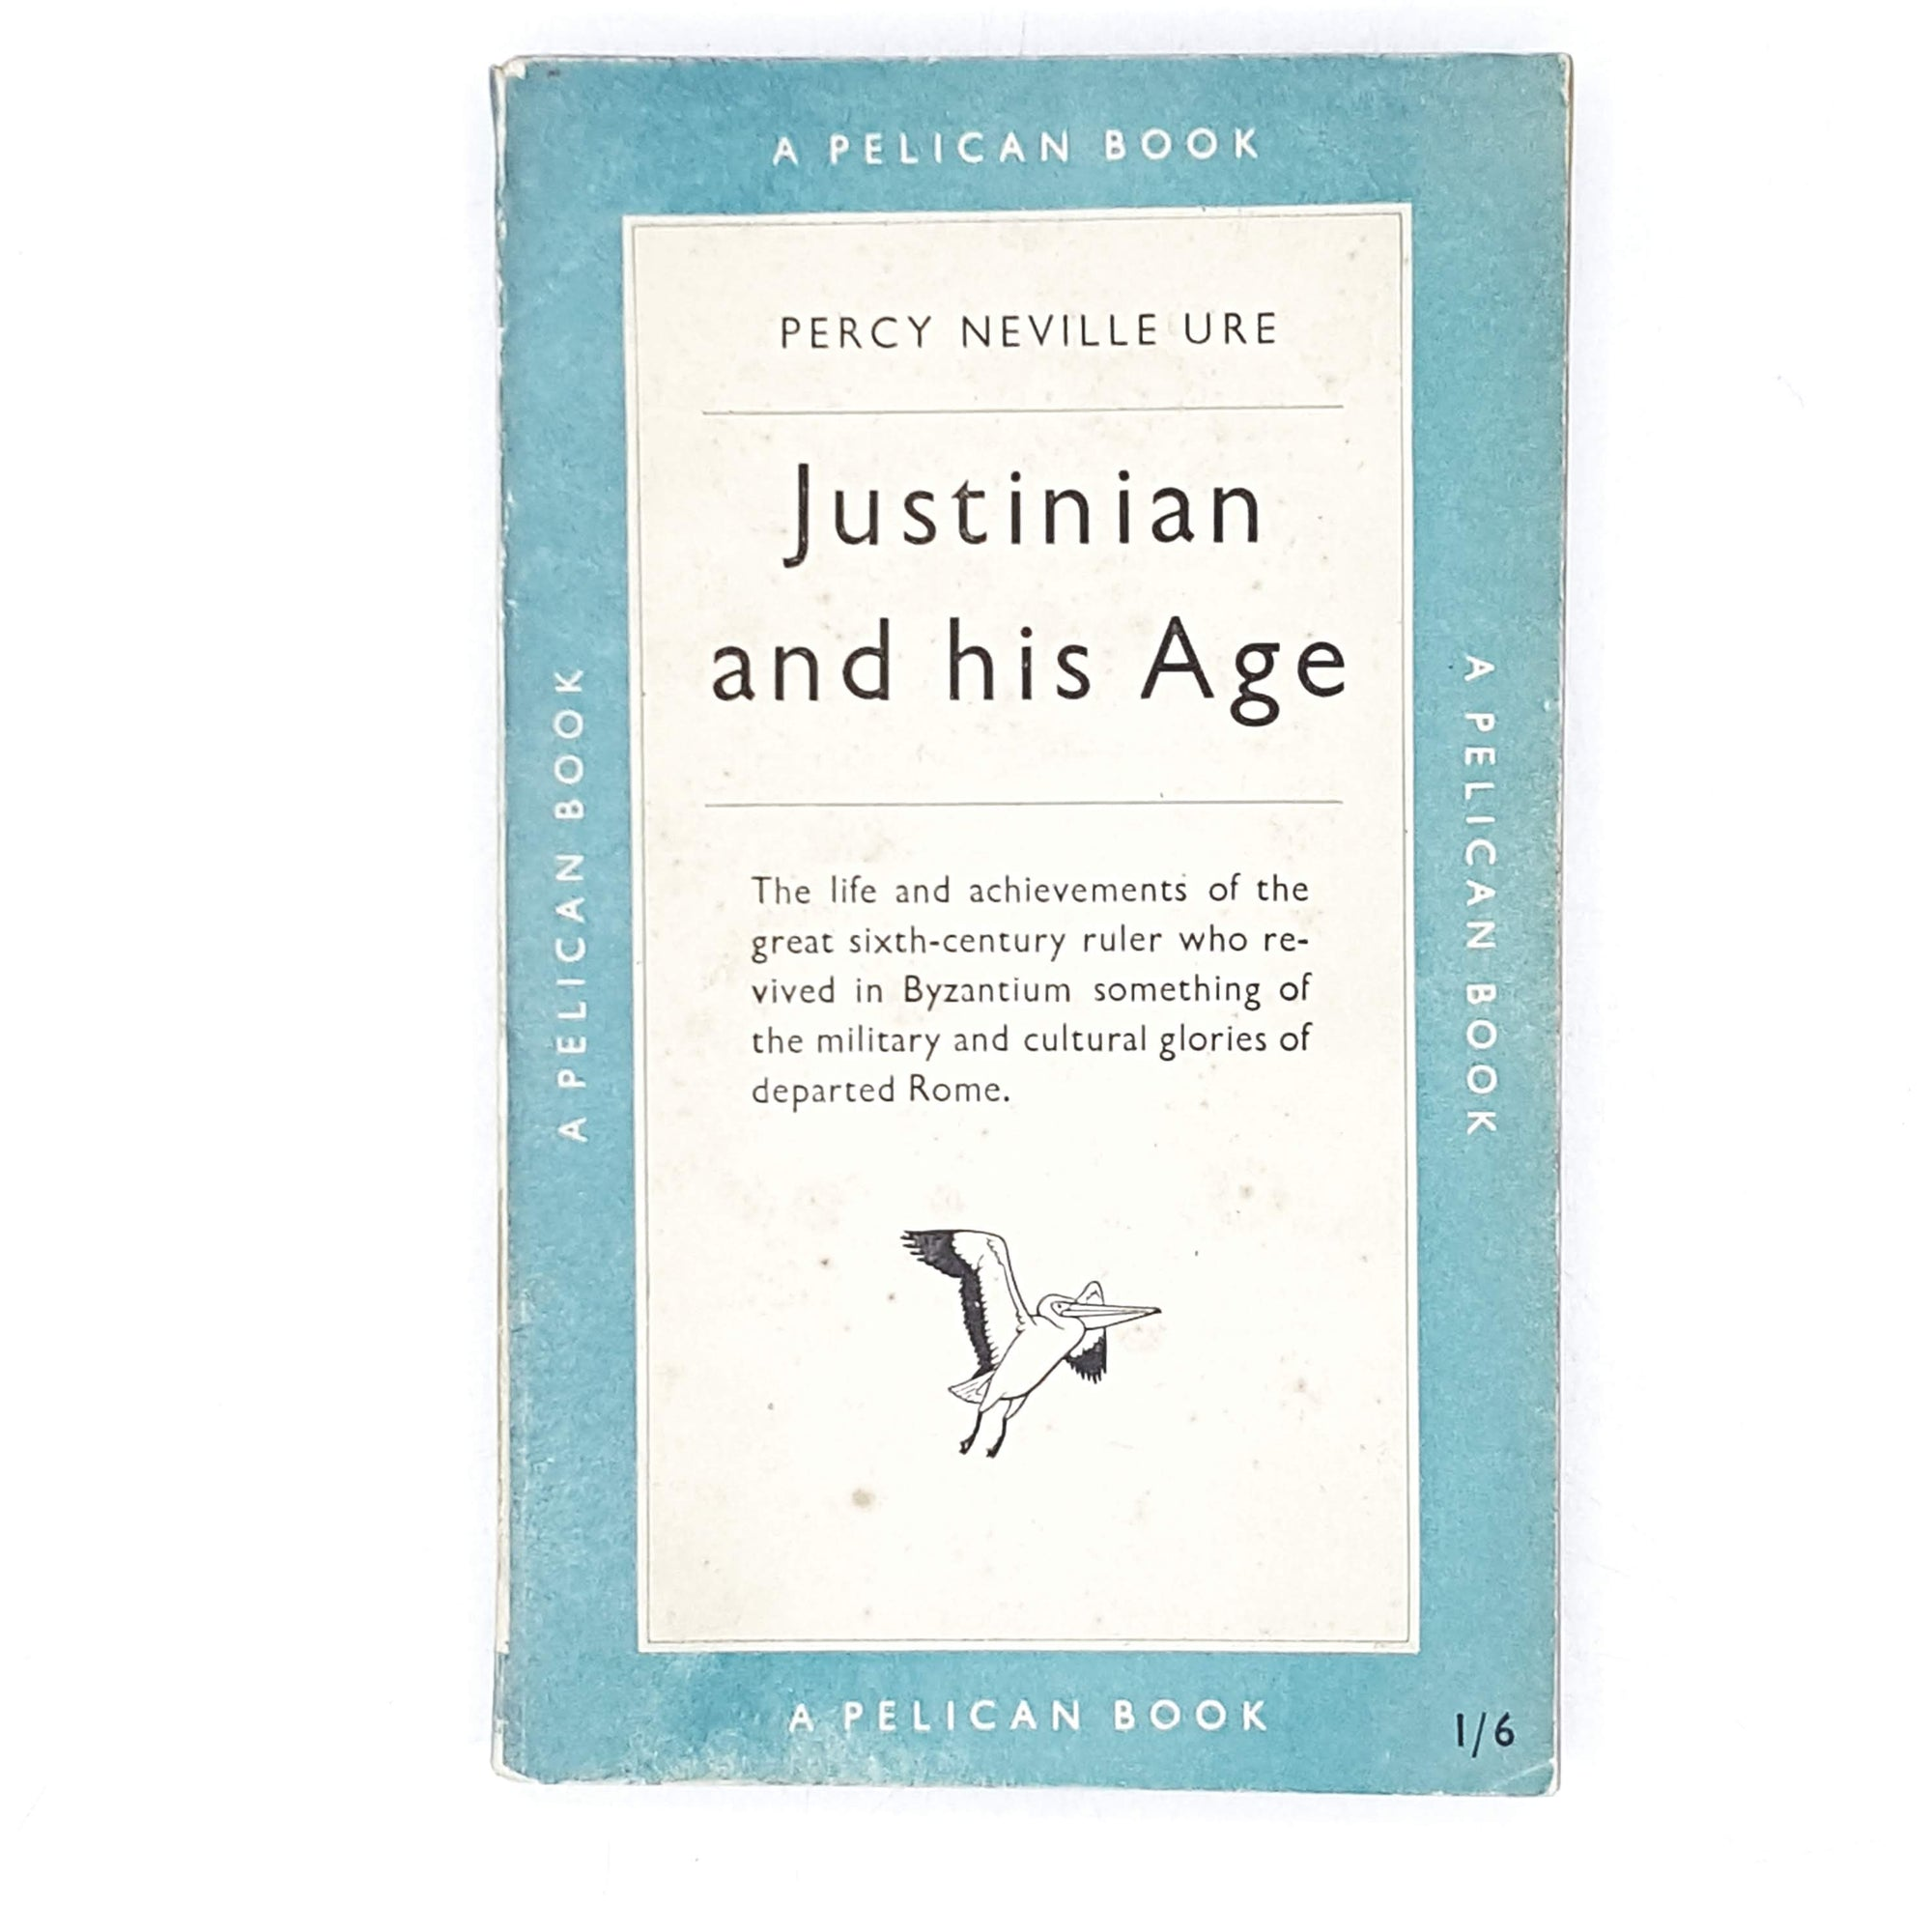 vintage-pelican-justinian-and-his-age-by-percy-neville-ure-1951-antique-pale-blue-country-house-library